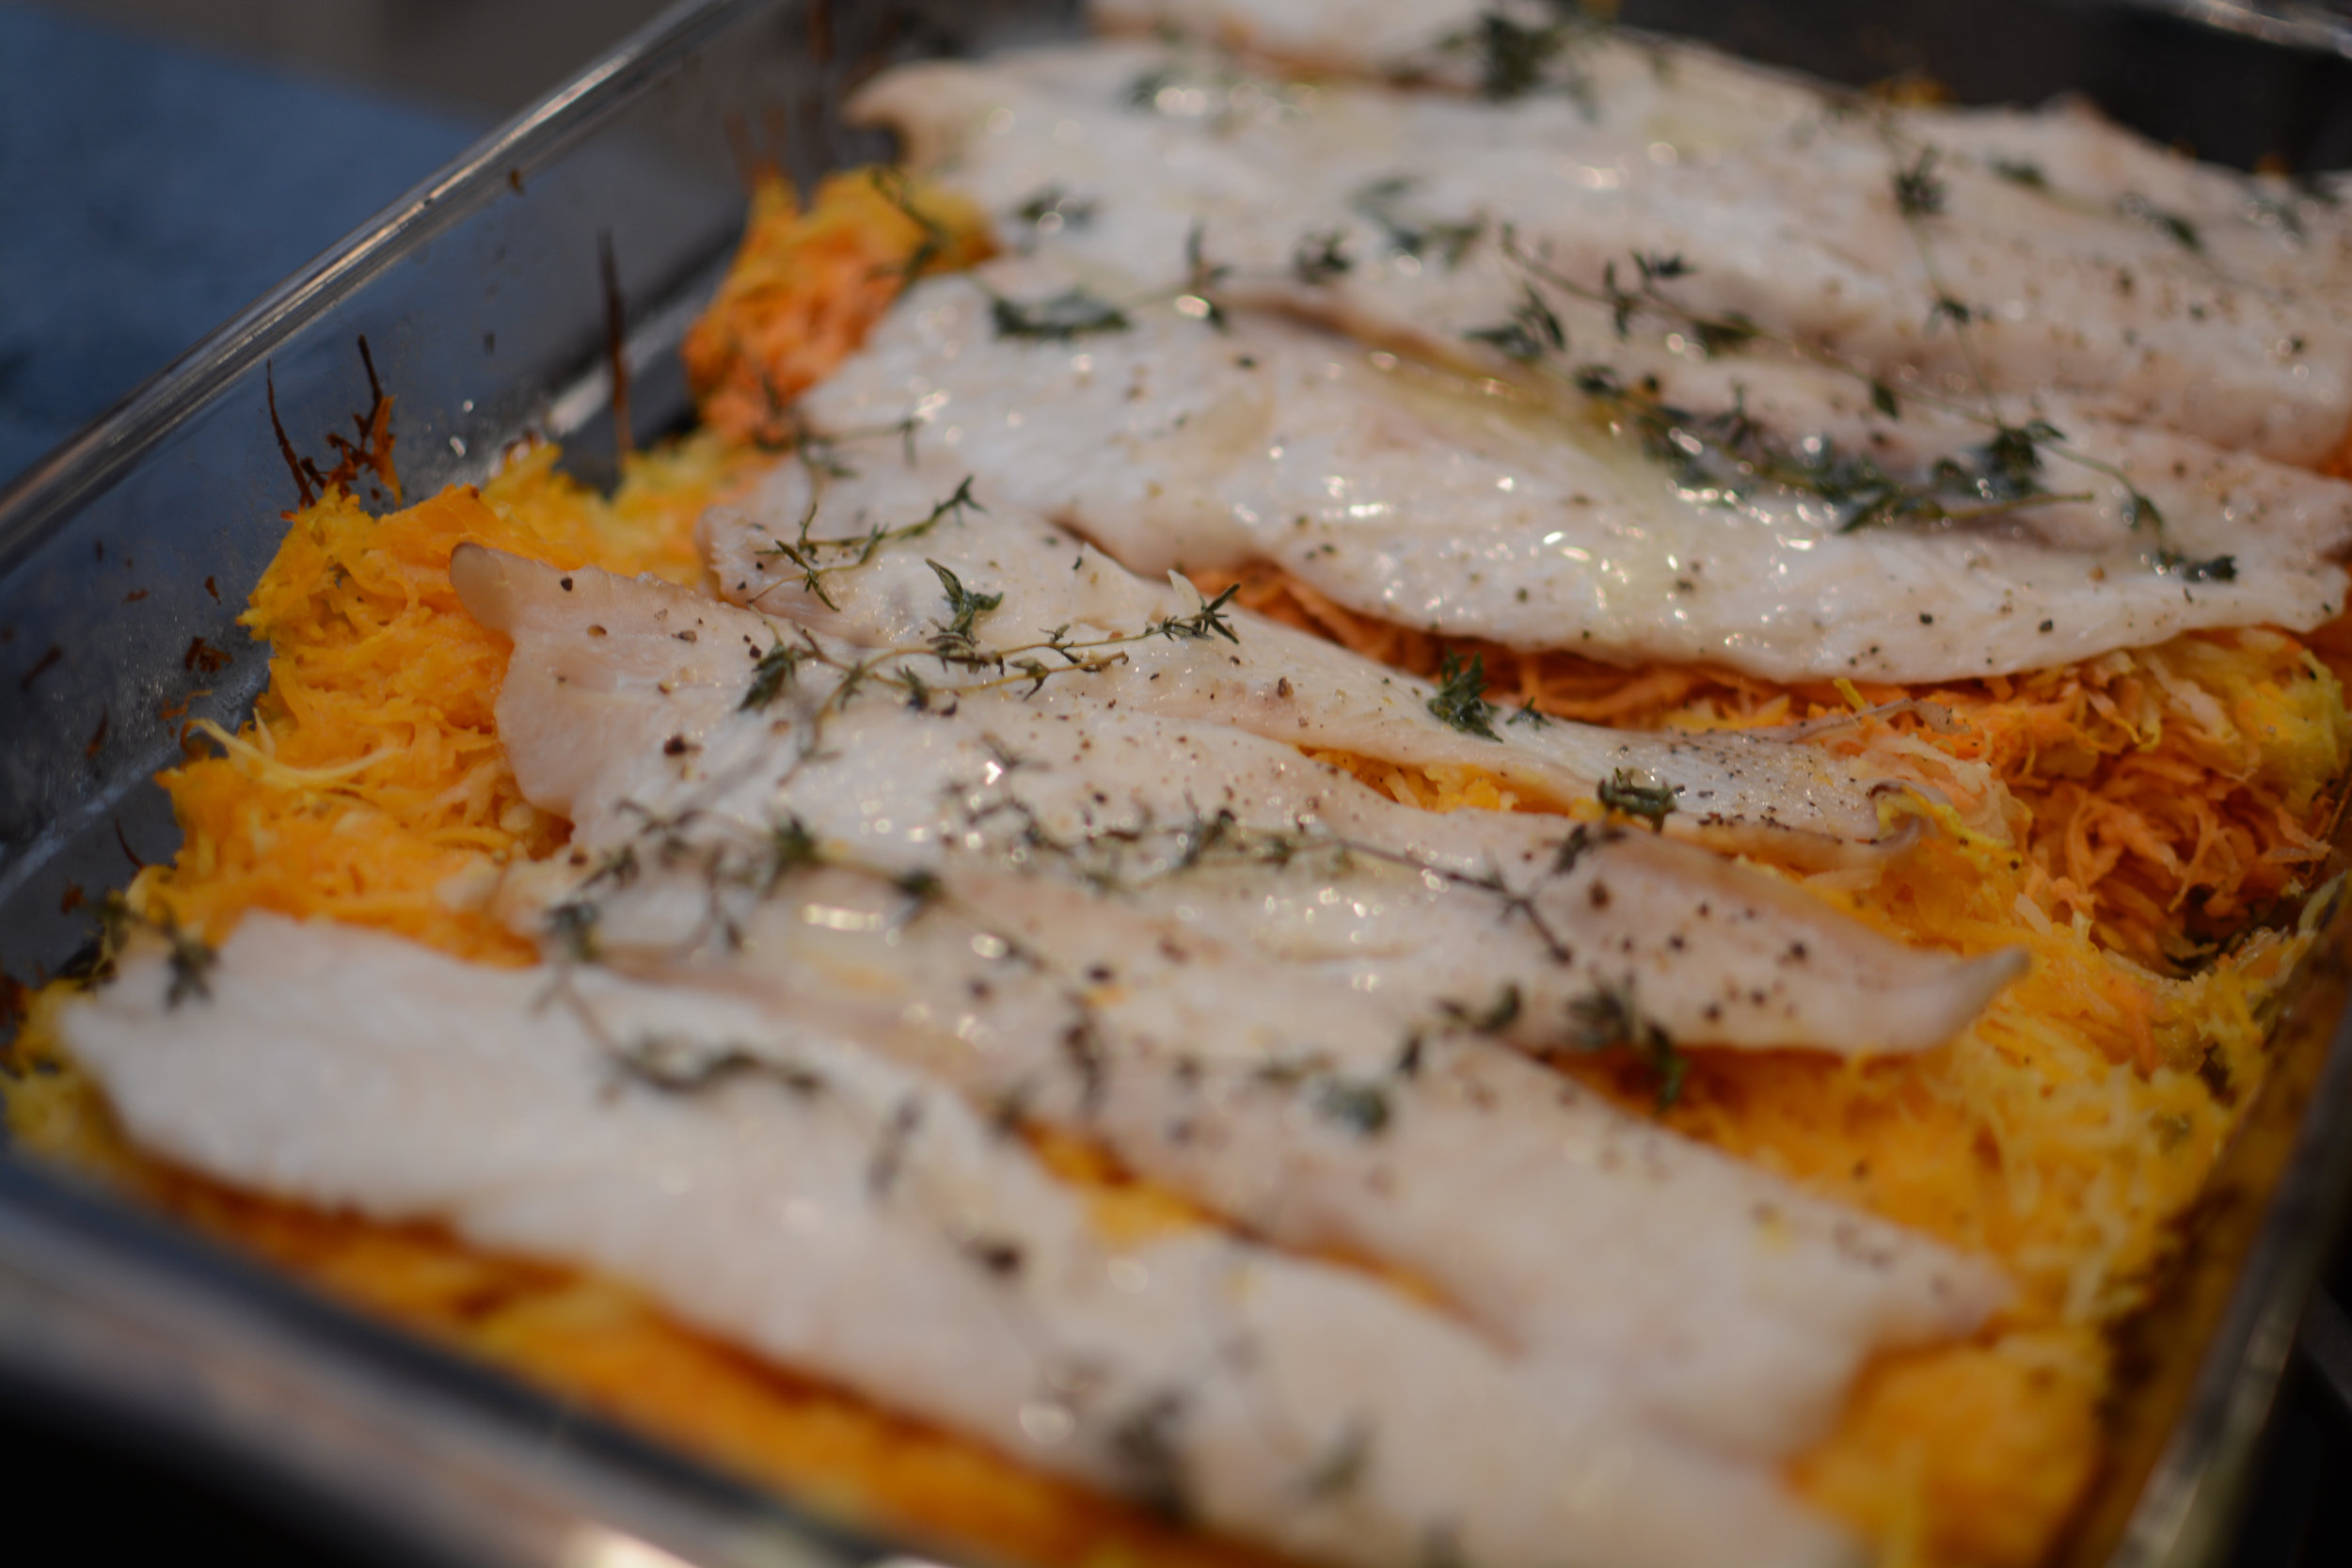 baked fish over vegetables